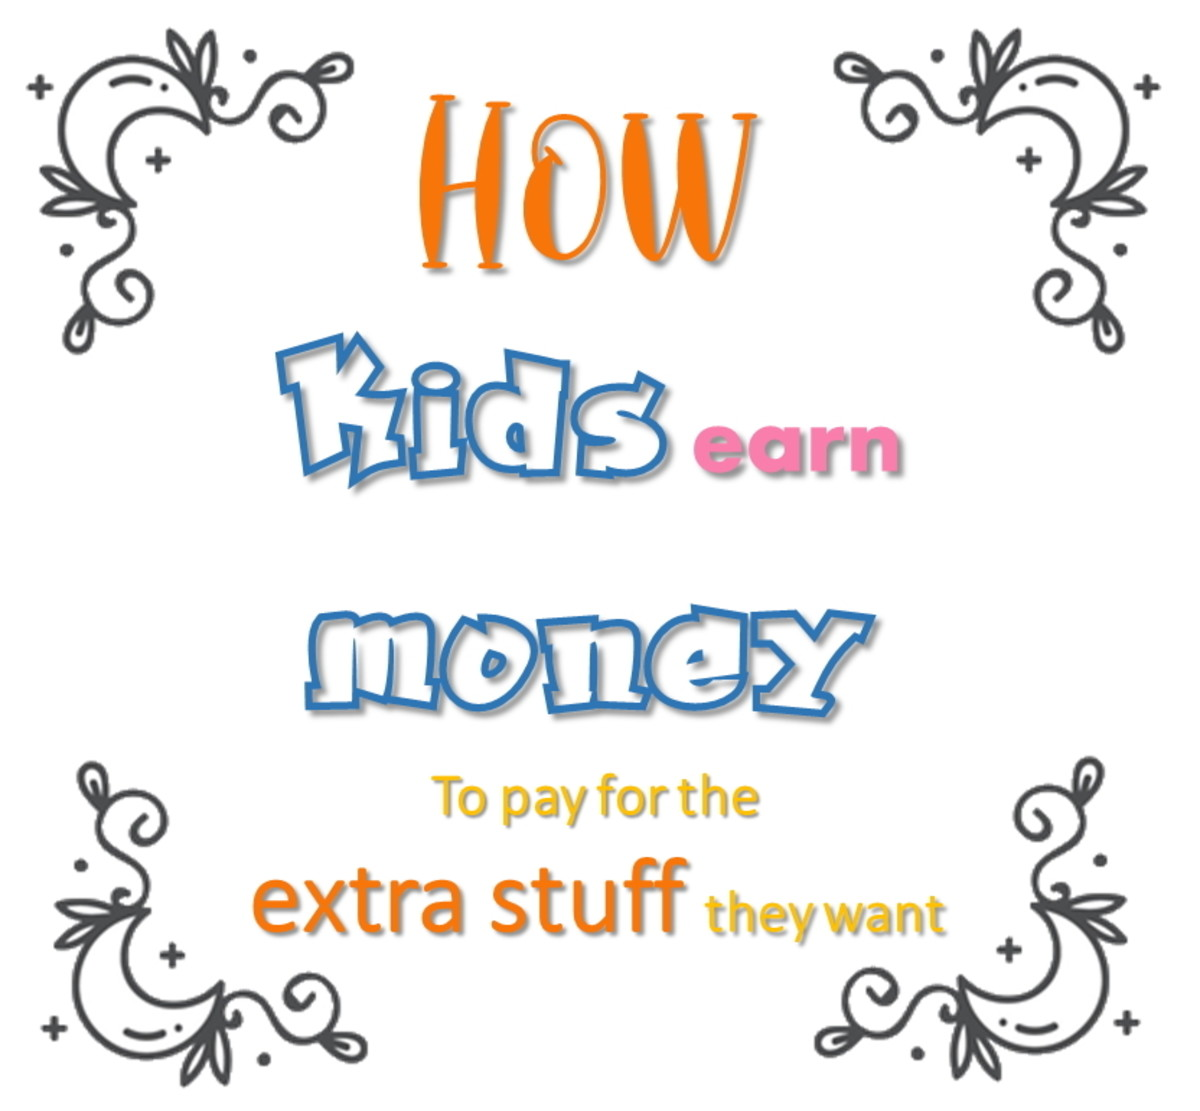 Why not try one of these ideas for some extra pocket money?